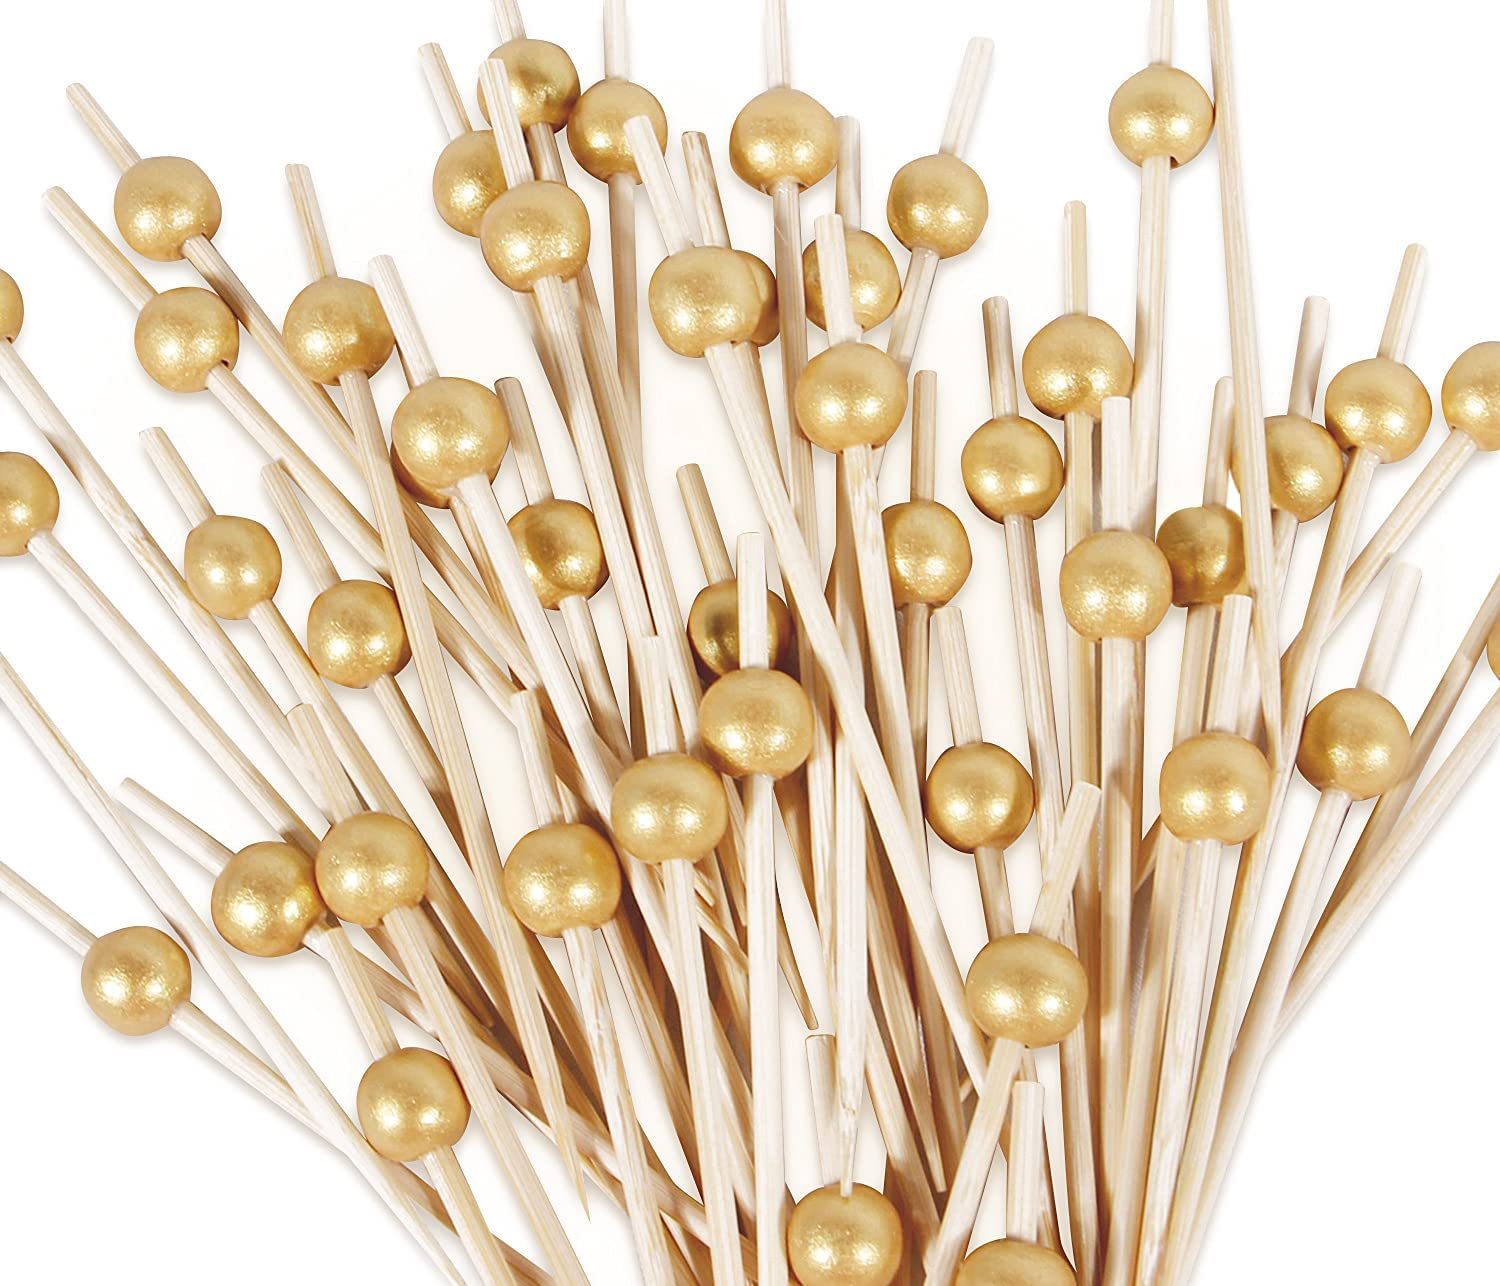 120PCS Bamboo Cocktail Picks, 4.7 Inch Handmade Sticks Cocktail Skewers, Wooden Fancy Toothpicks for Appetizer Drinks Fruits Sandwich Party Decorative Food Picks with Gold Pearl